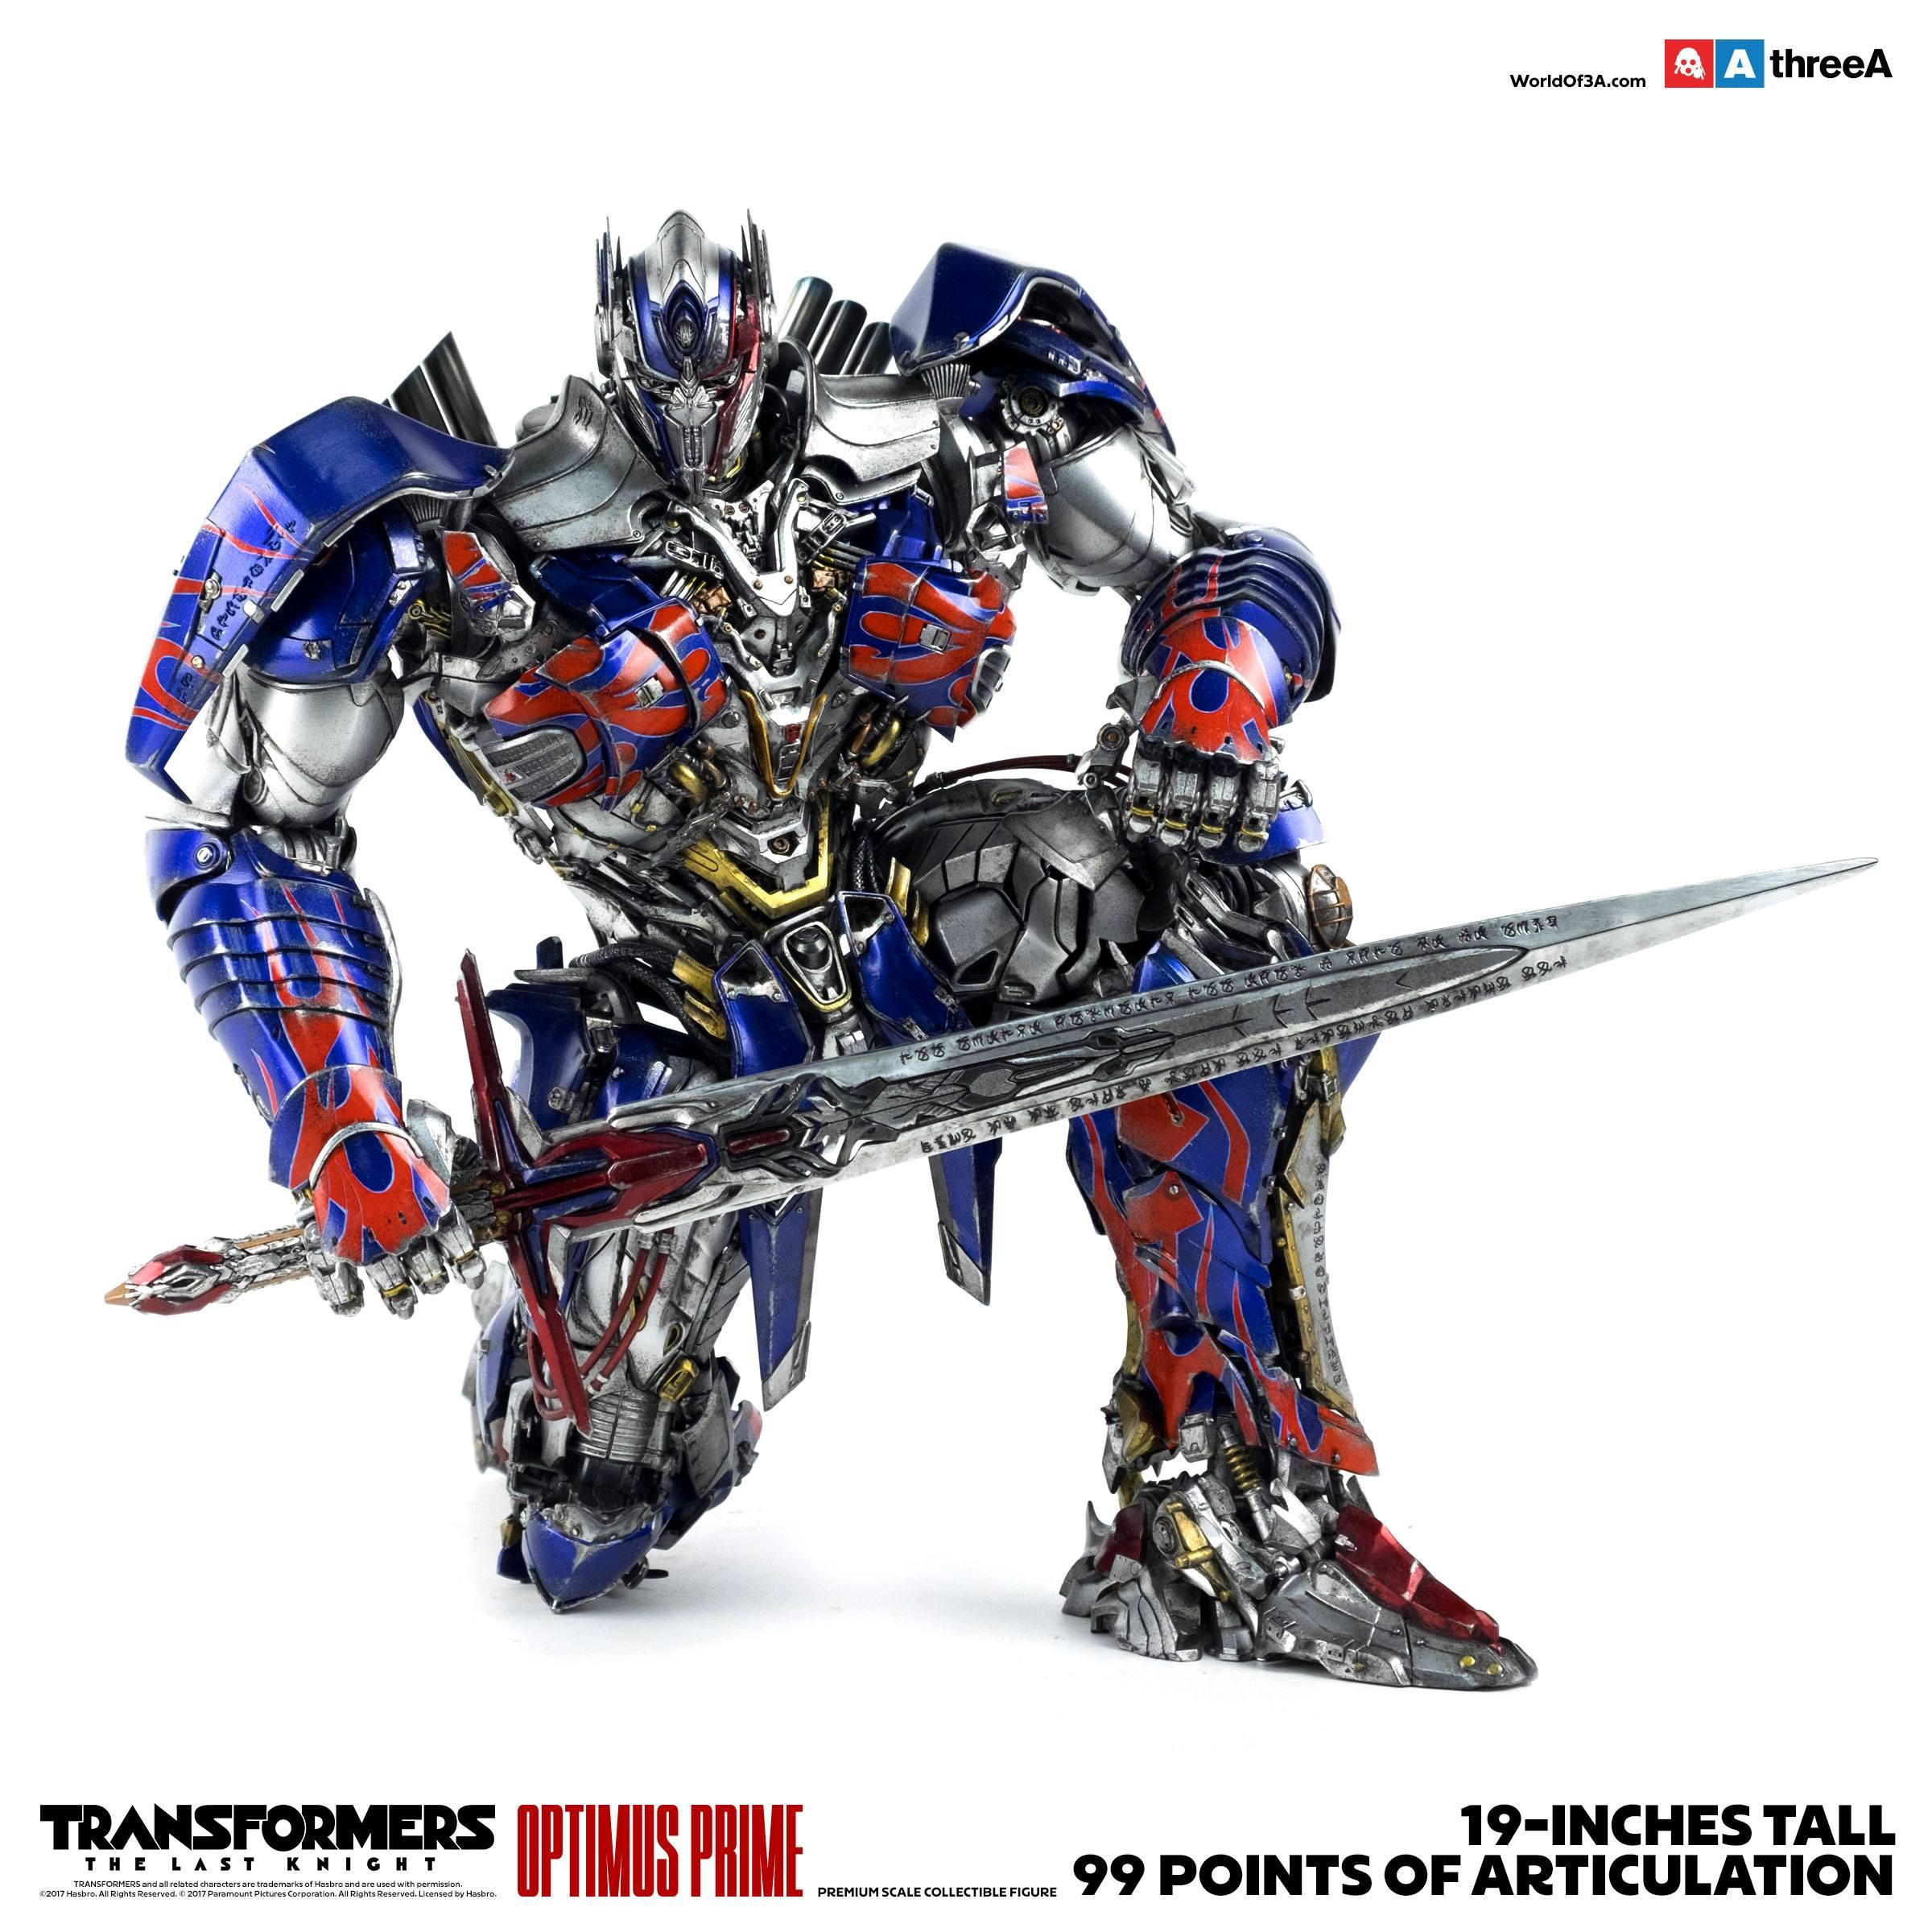 Transformers The Last Knight Action Figure 1/6 Optimus Prime 48 cm